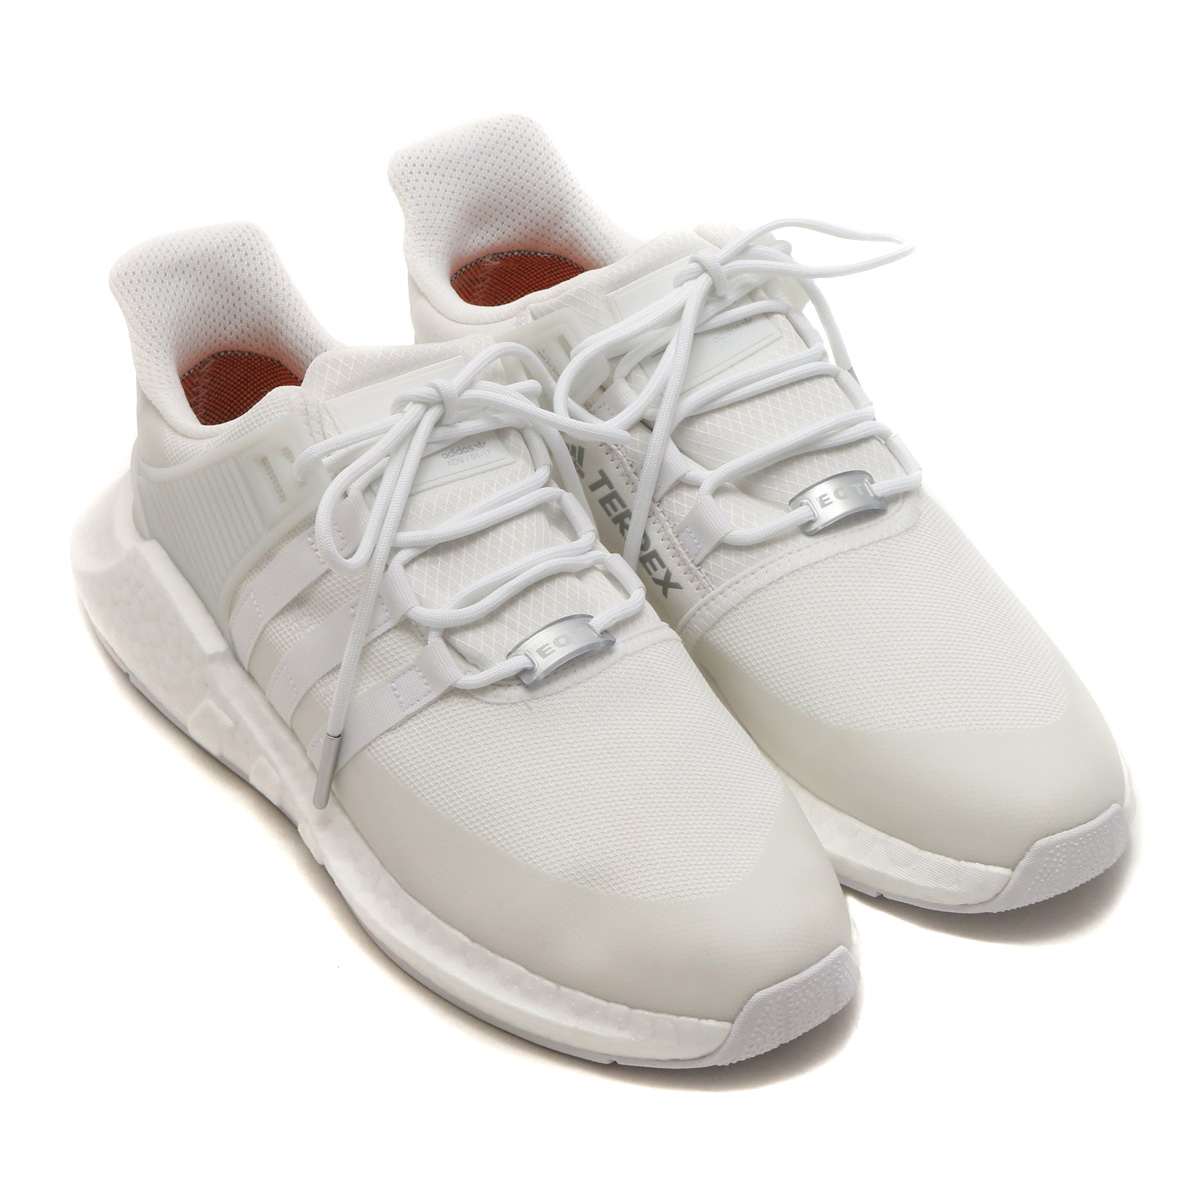 hot sales 76cd7 55397 adidas Originals EQT SUPPORT 93/17 GTX (Adidas originals E cue tea support  93/17 GTX) Running White/Running White/Running White 18SS-S